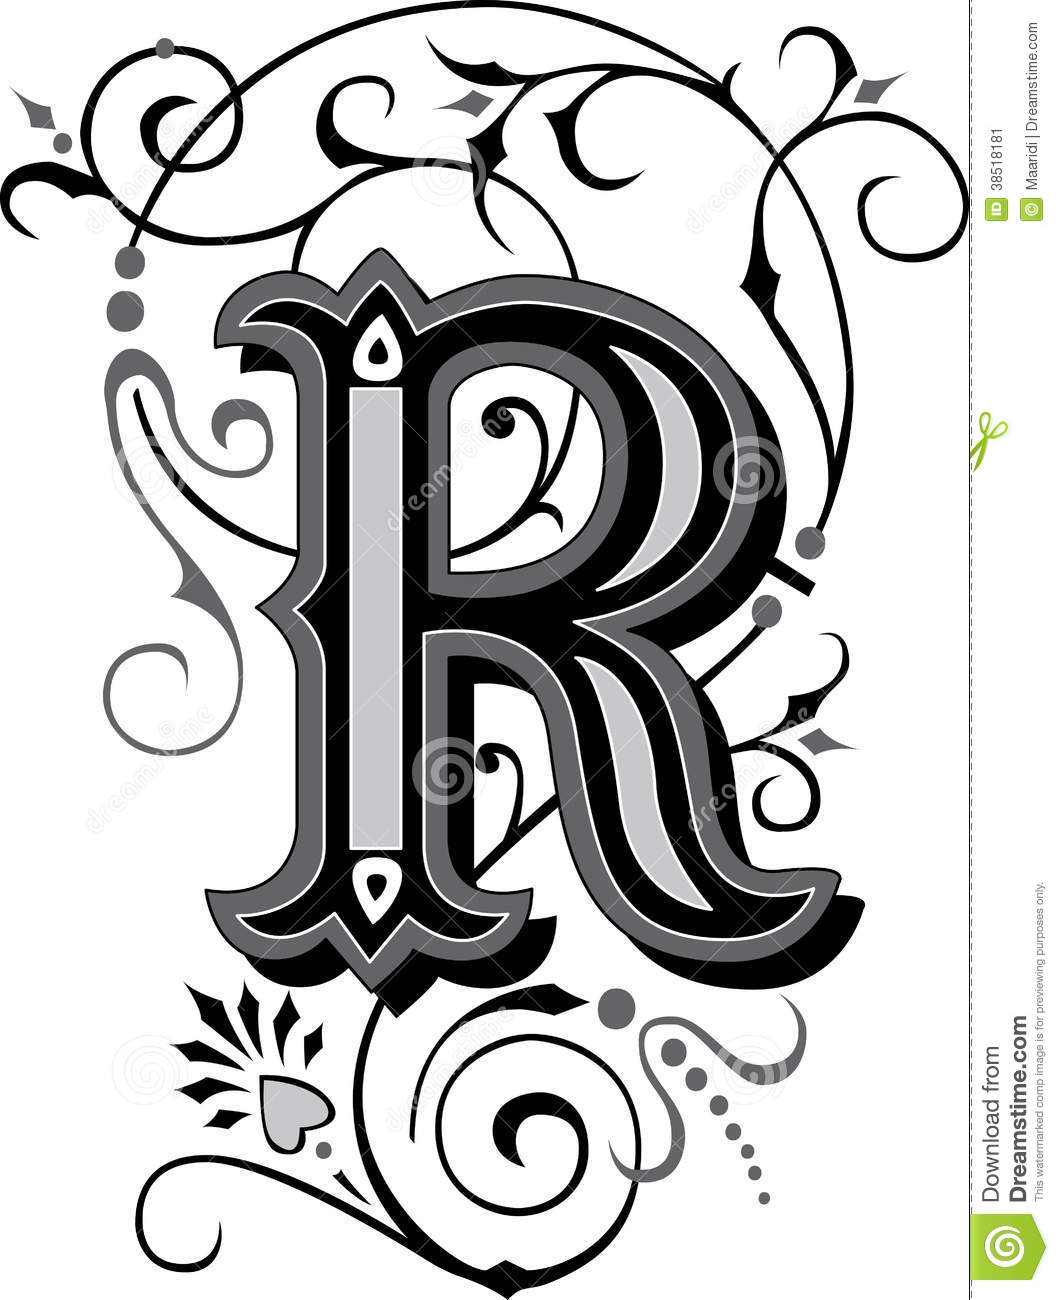 beautiful ornate alphabets letter s grayscale grayscale coloring pages coloring pages 939